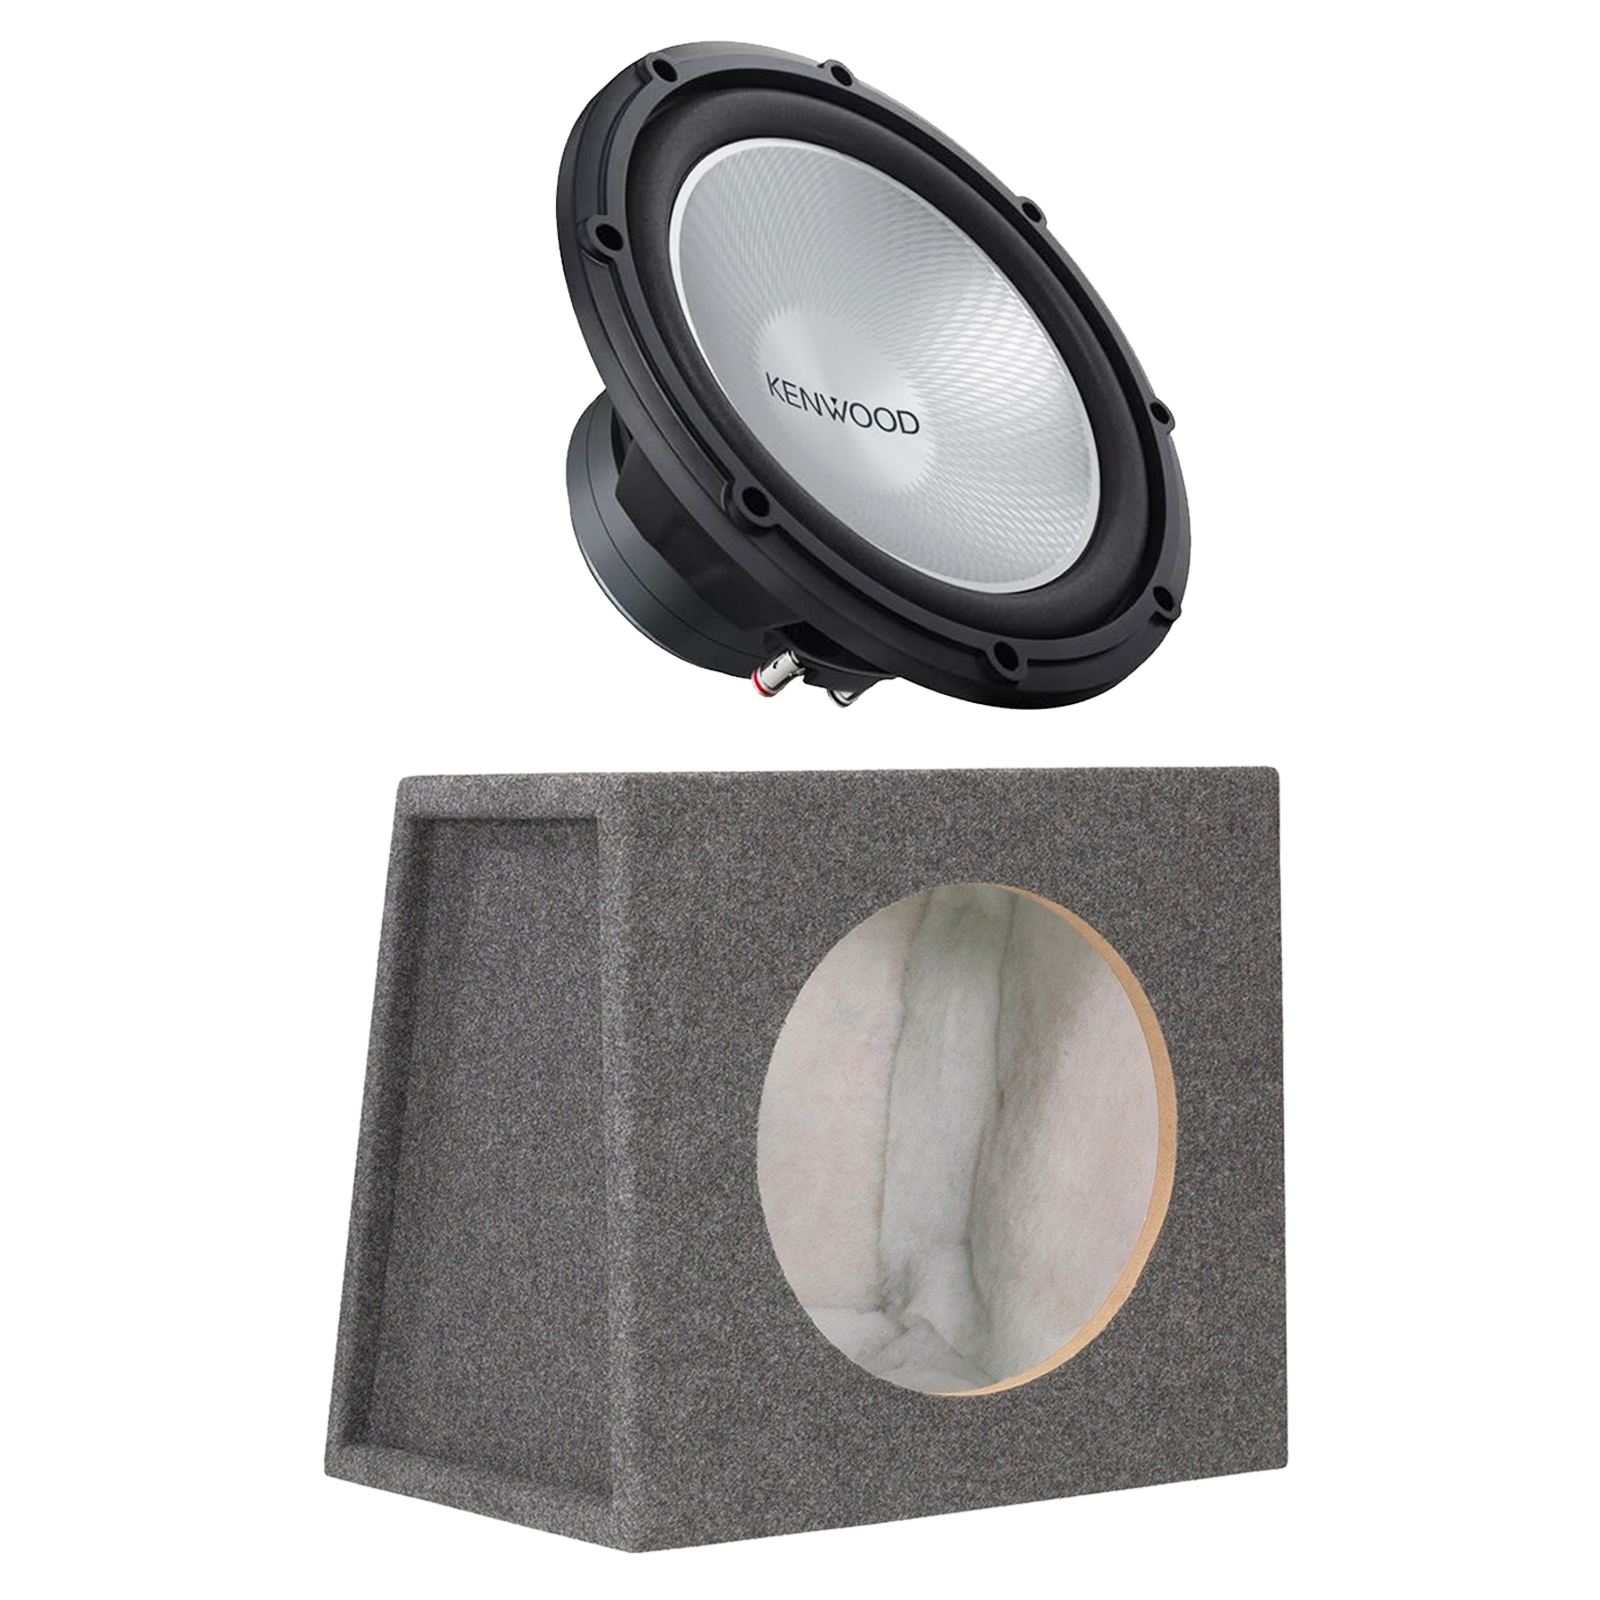 "Kenwood KFC-W12PS 12 1000W Car Subwoofer Power Sub 4 Ohm, and Scosche SE12RCC Single 12"" Subwoofer Enclosure"